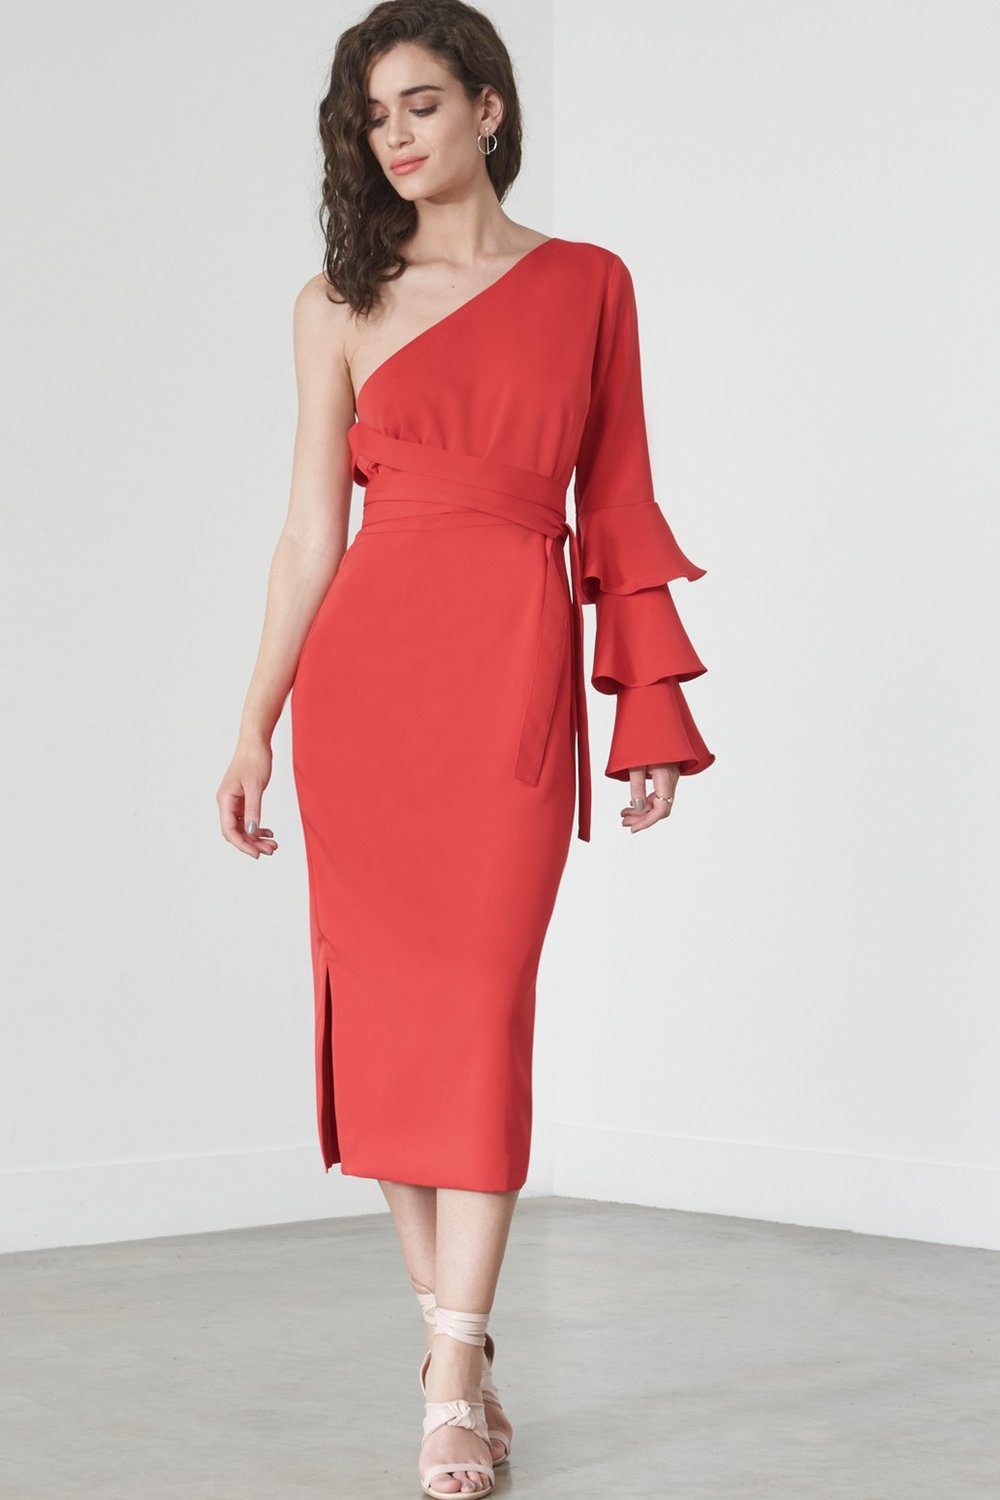 Ruffle Single Sleeve Dress - Lavish Alice  £78  ( Editors pick )